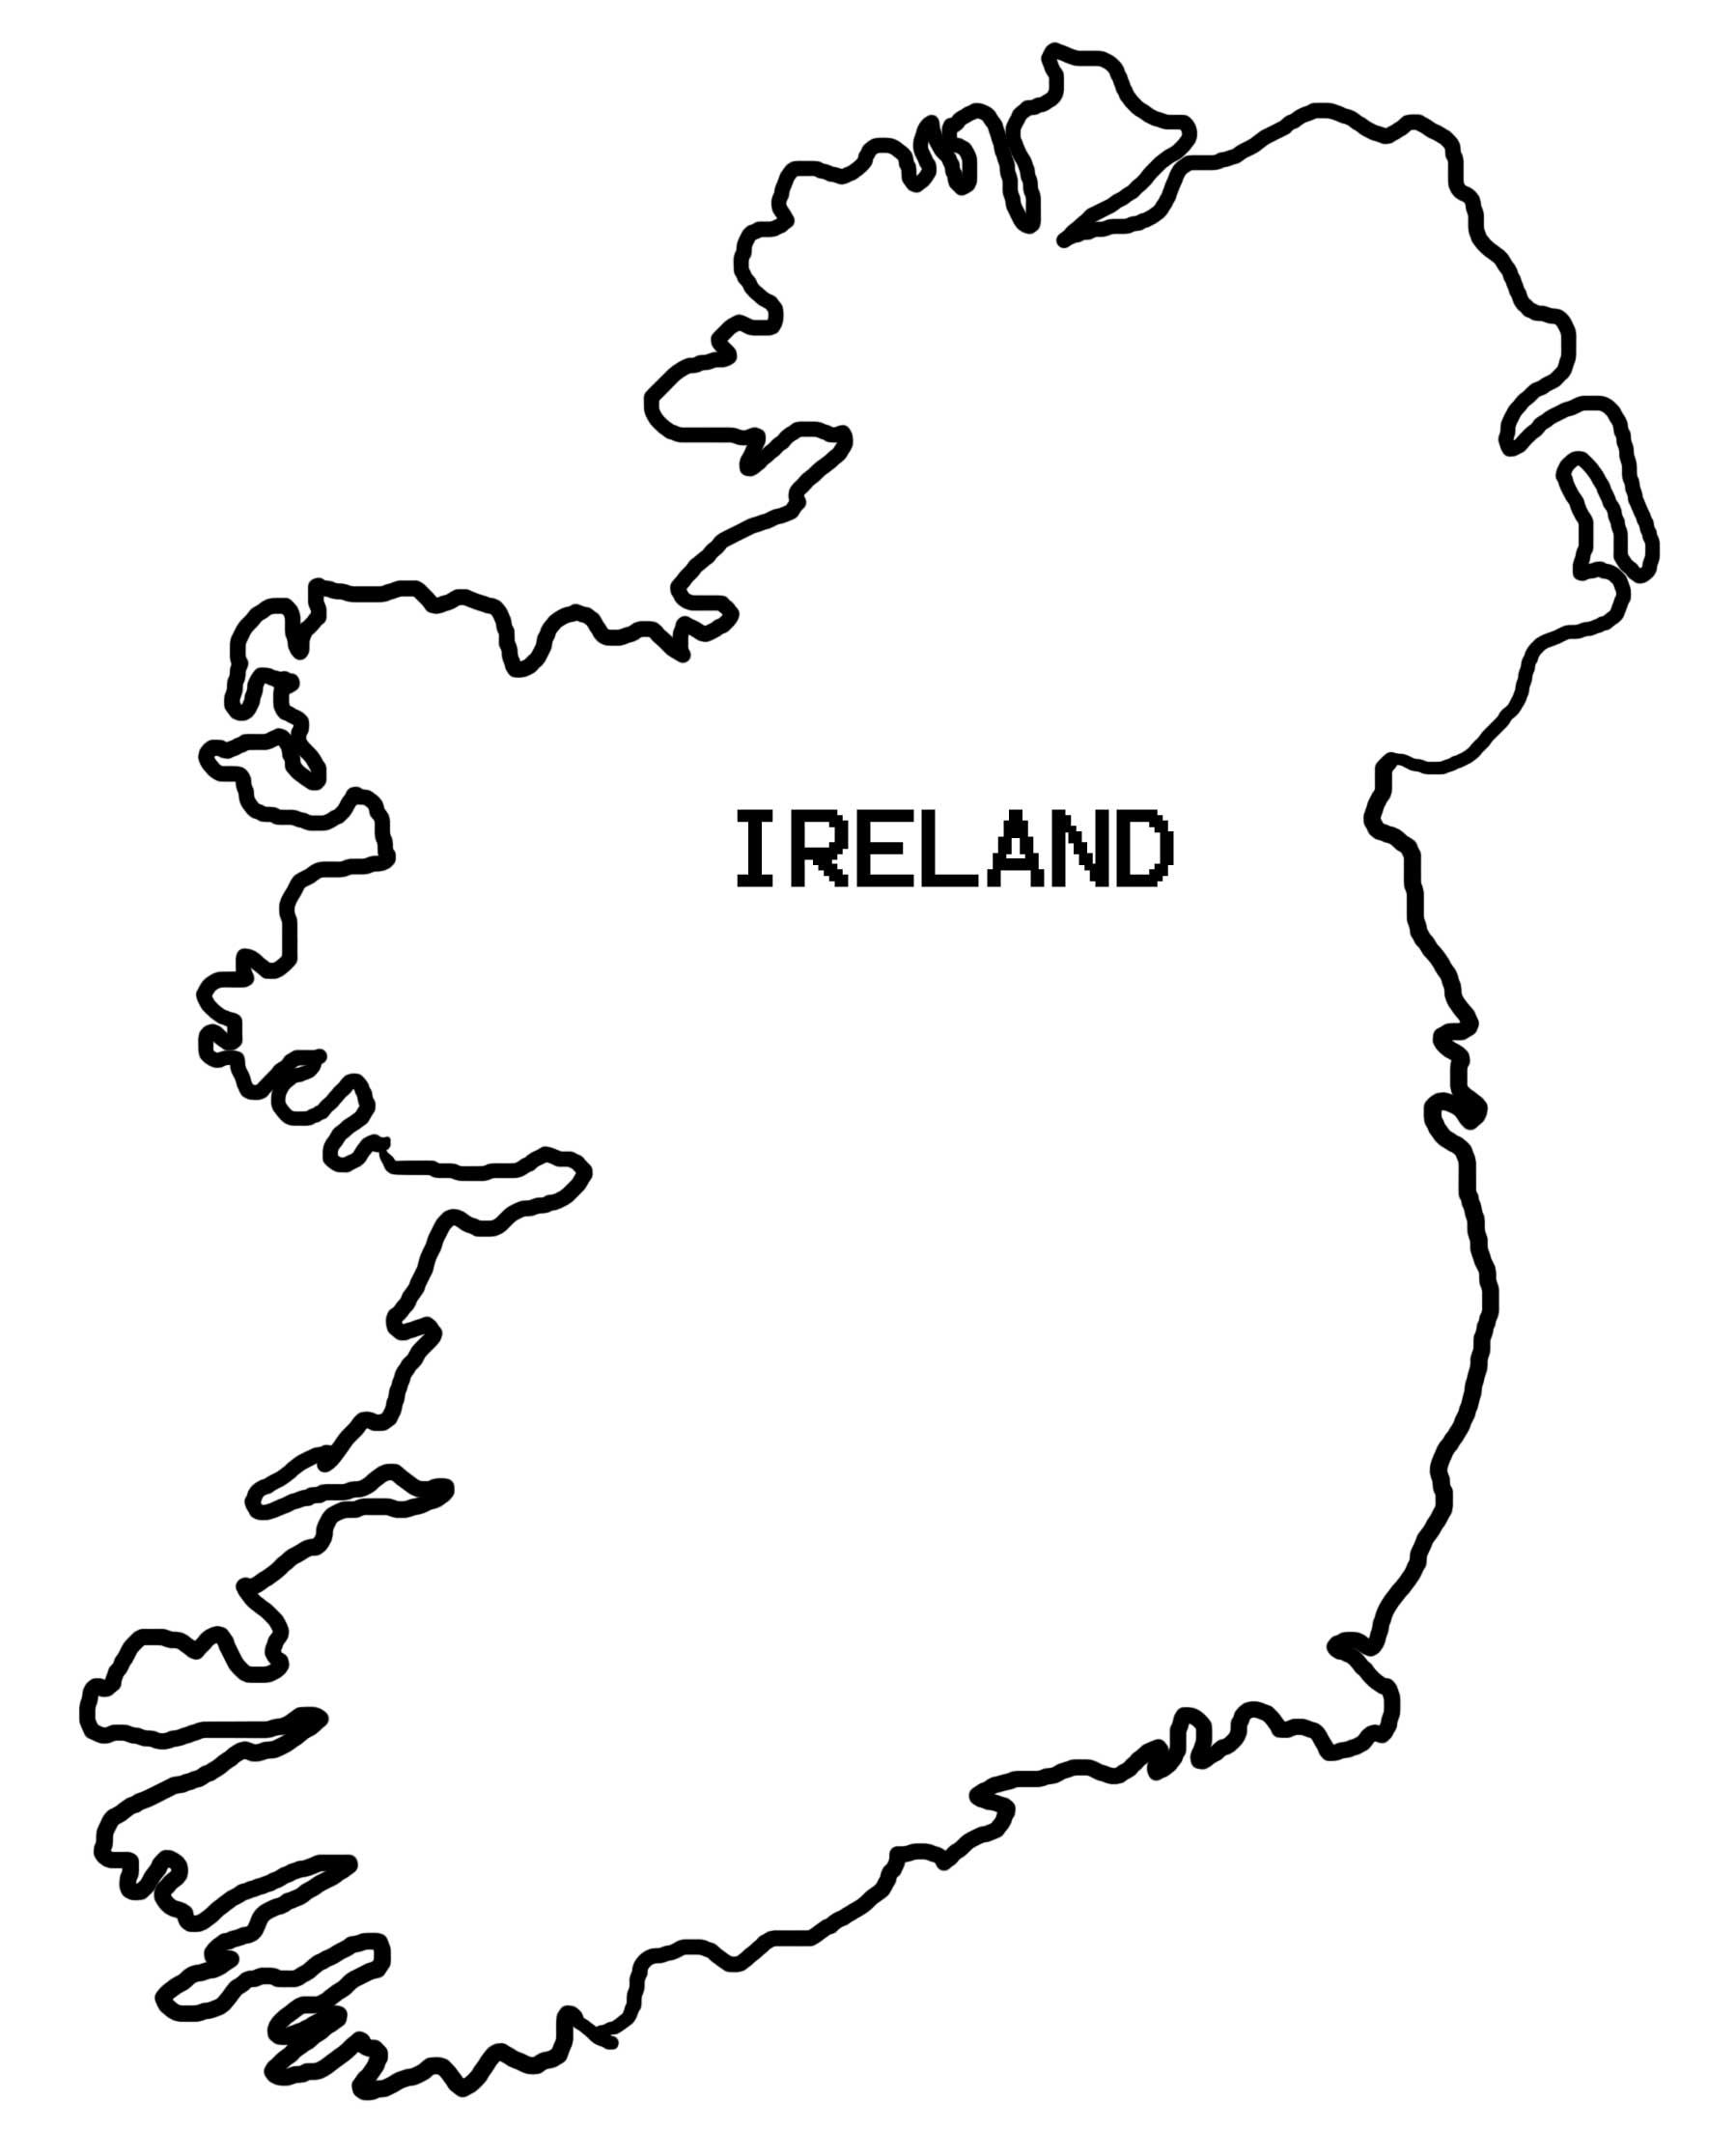 Drawing Ireland Map Outline 52 For Your Free Online with.